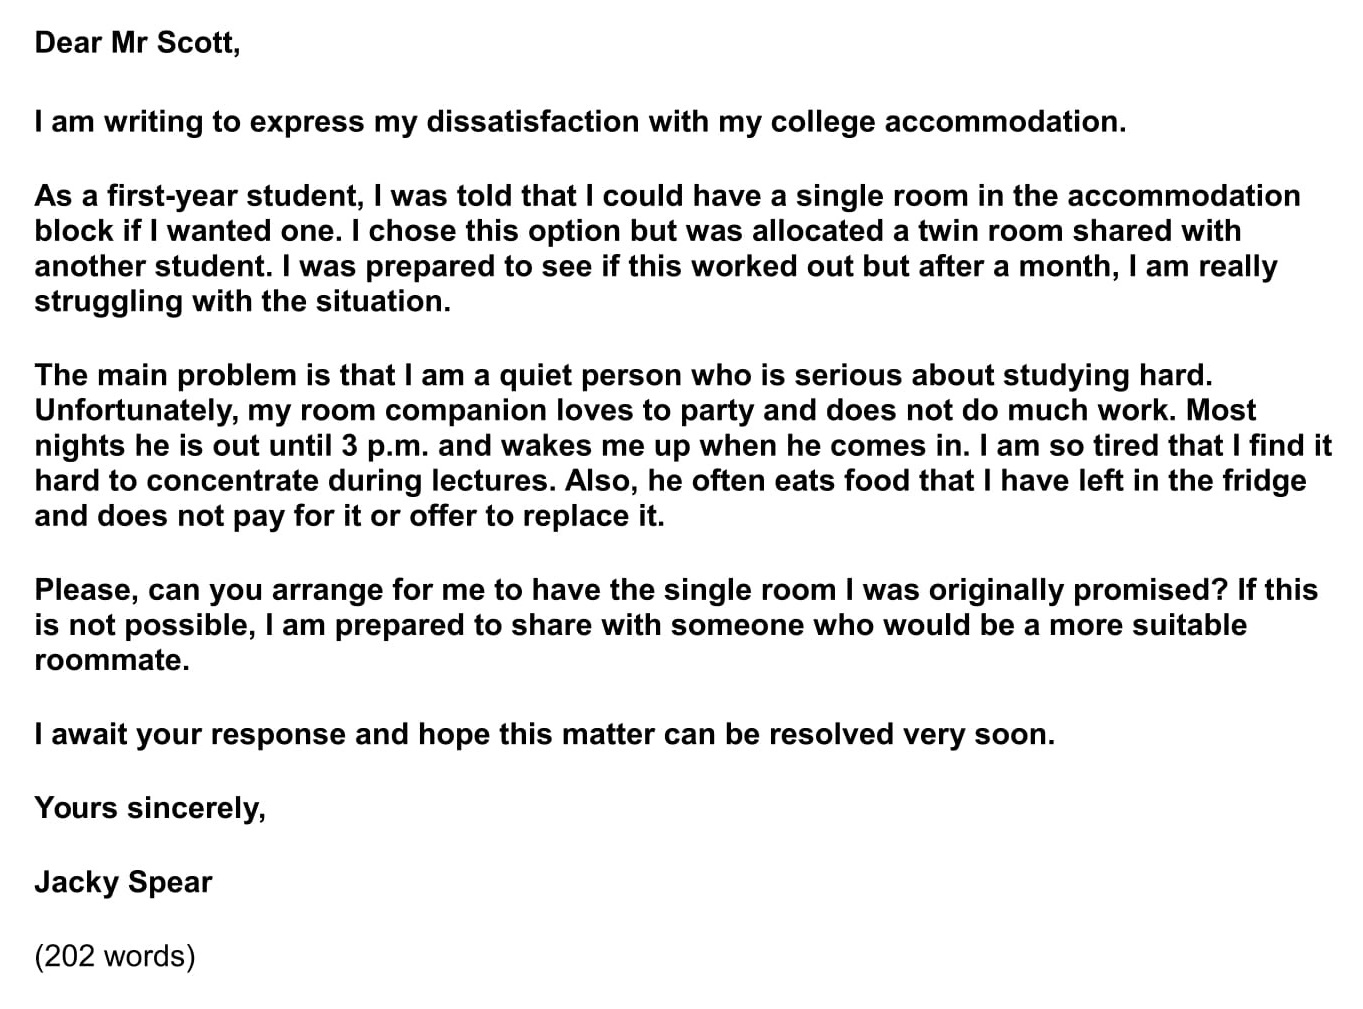 Sample Letter To Clean Up Property from www.ieltsjacky.com